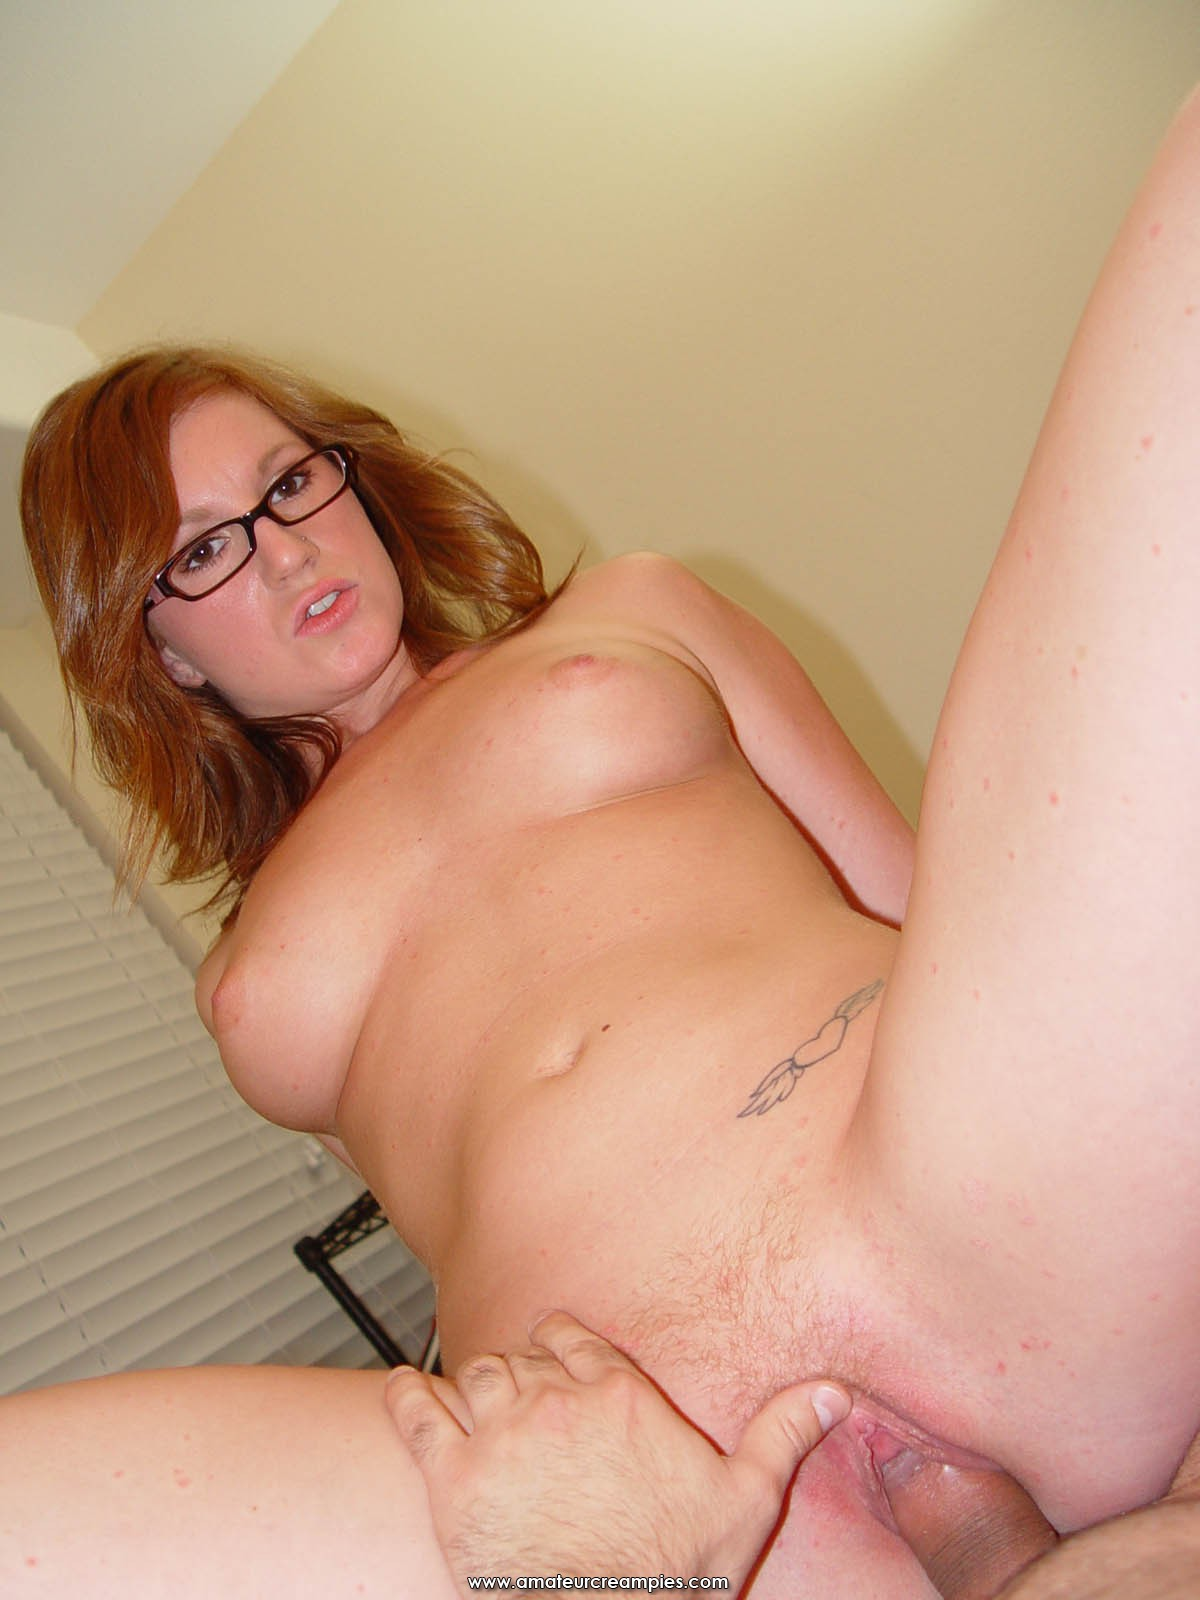 Amateur Creampies Farrah. DOWNLOAD (275 MB)